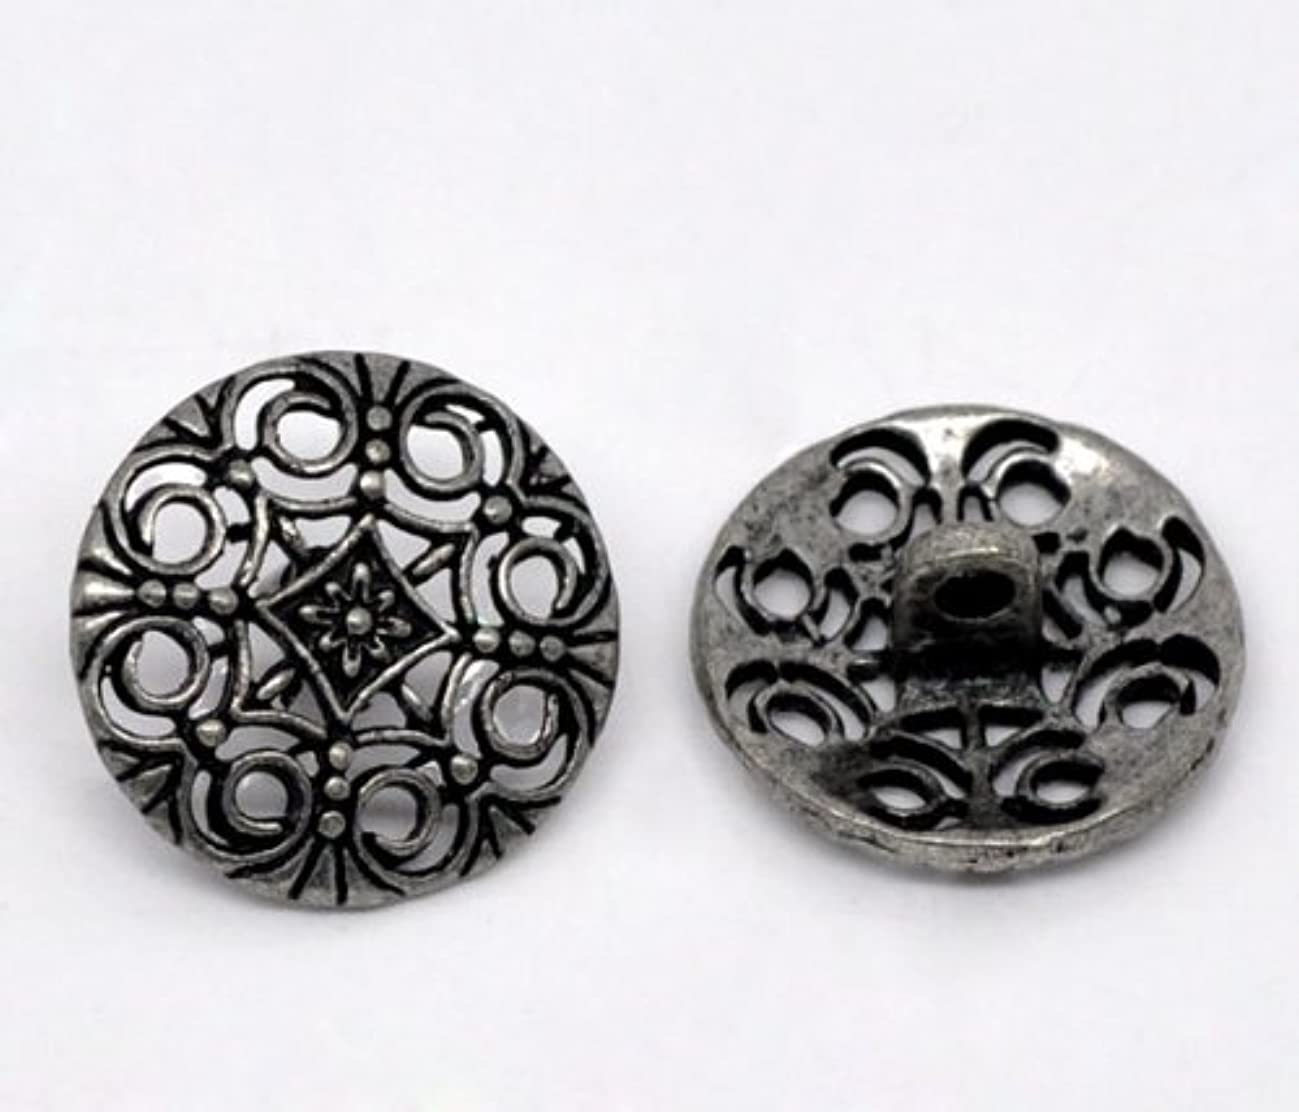 10pc Gunmetal Hollow Sewing Metal Buttons Flower Carved 18mm (3/4